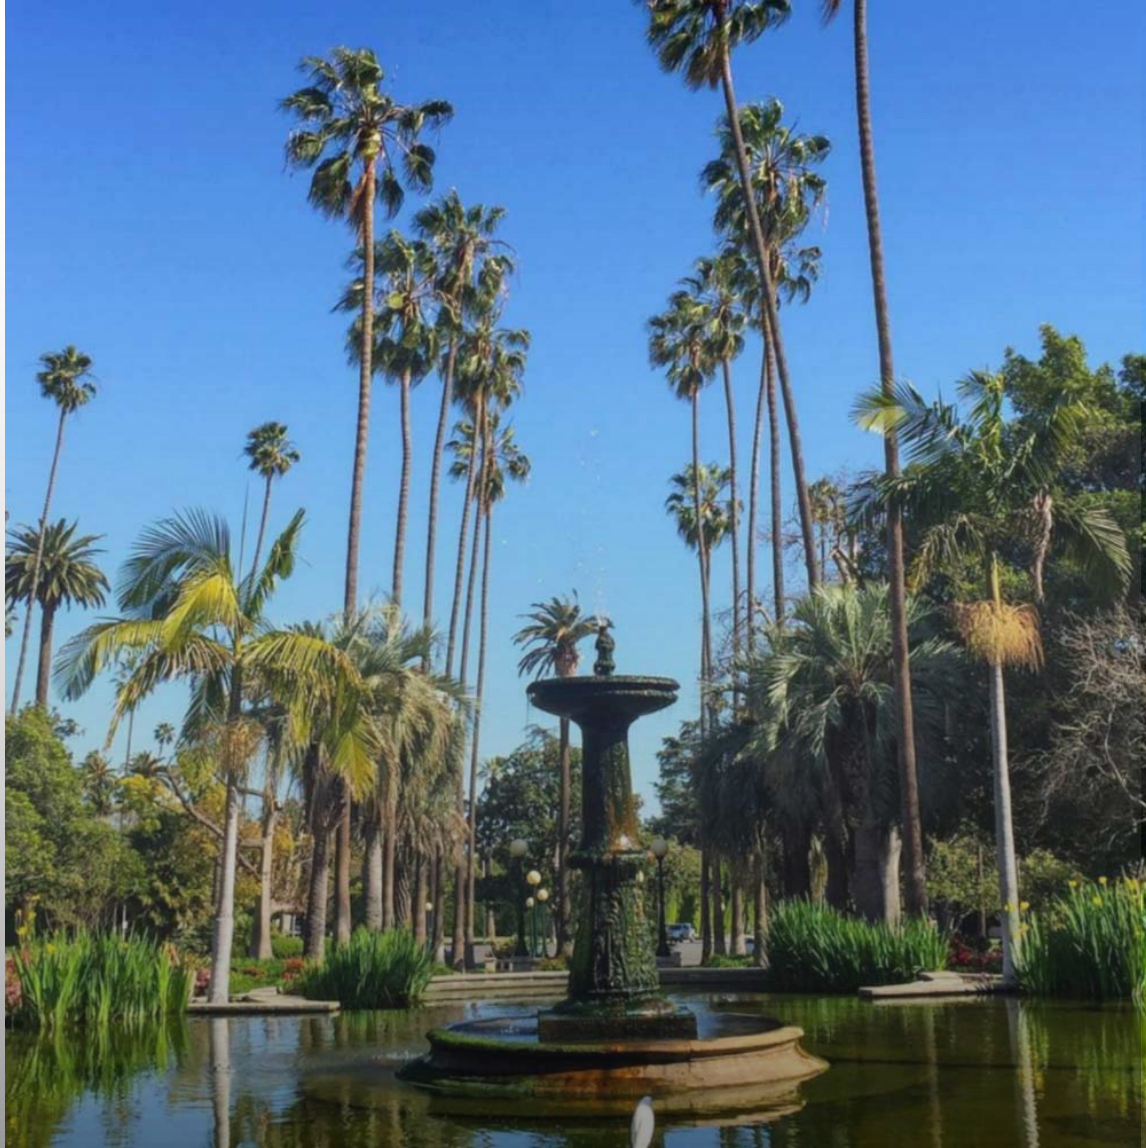 A view of the fountain in Will Rogers Memorial Park in Beverly Hills, CA. Instagram photo by @surfer_rosa